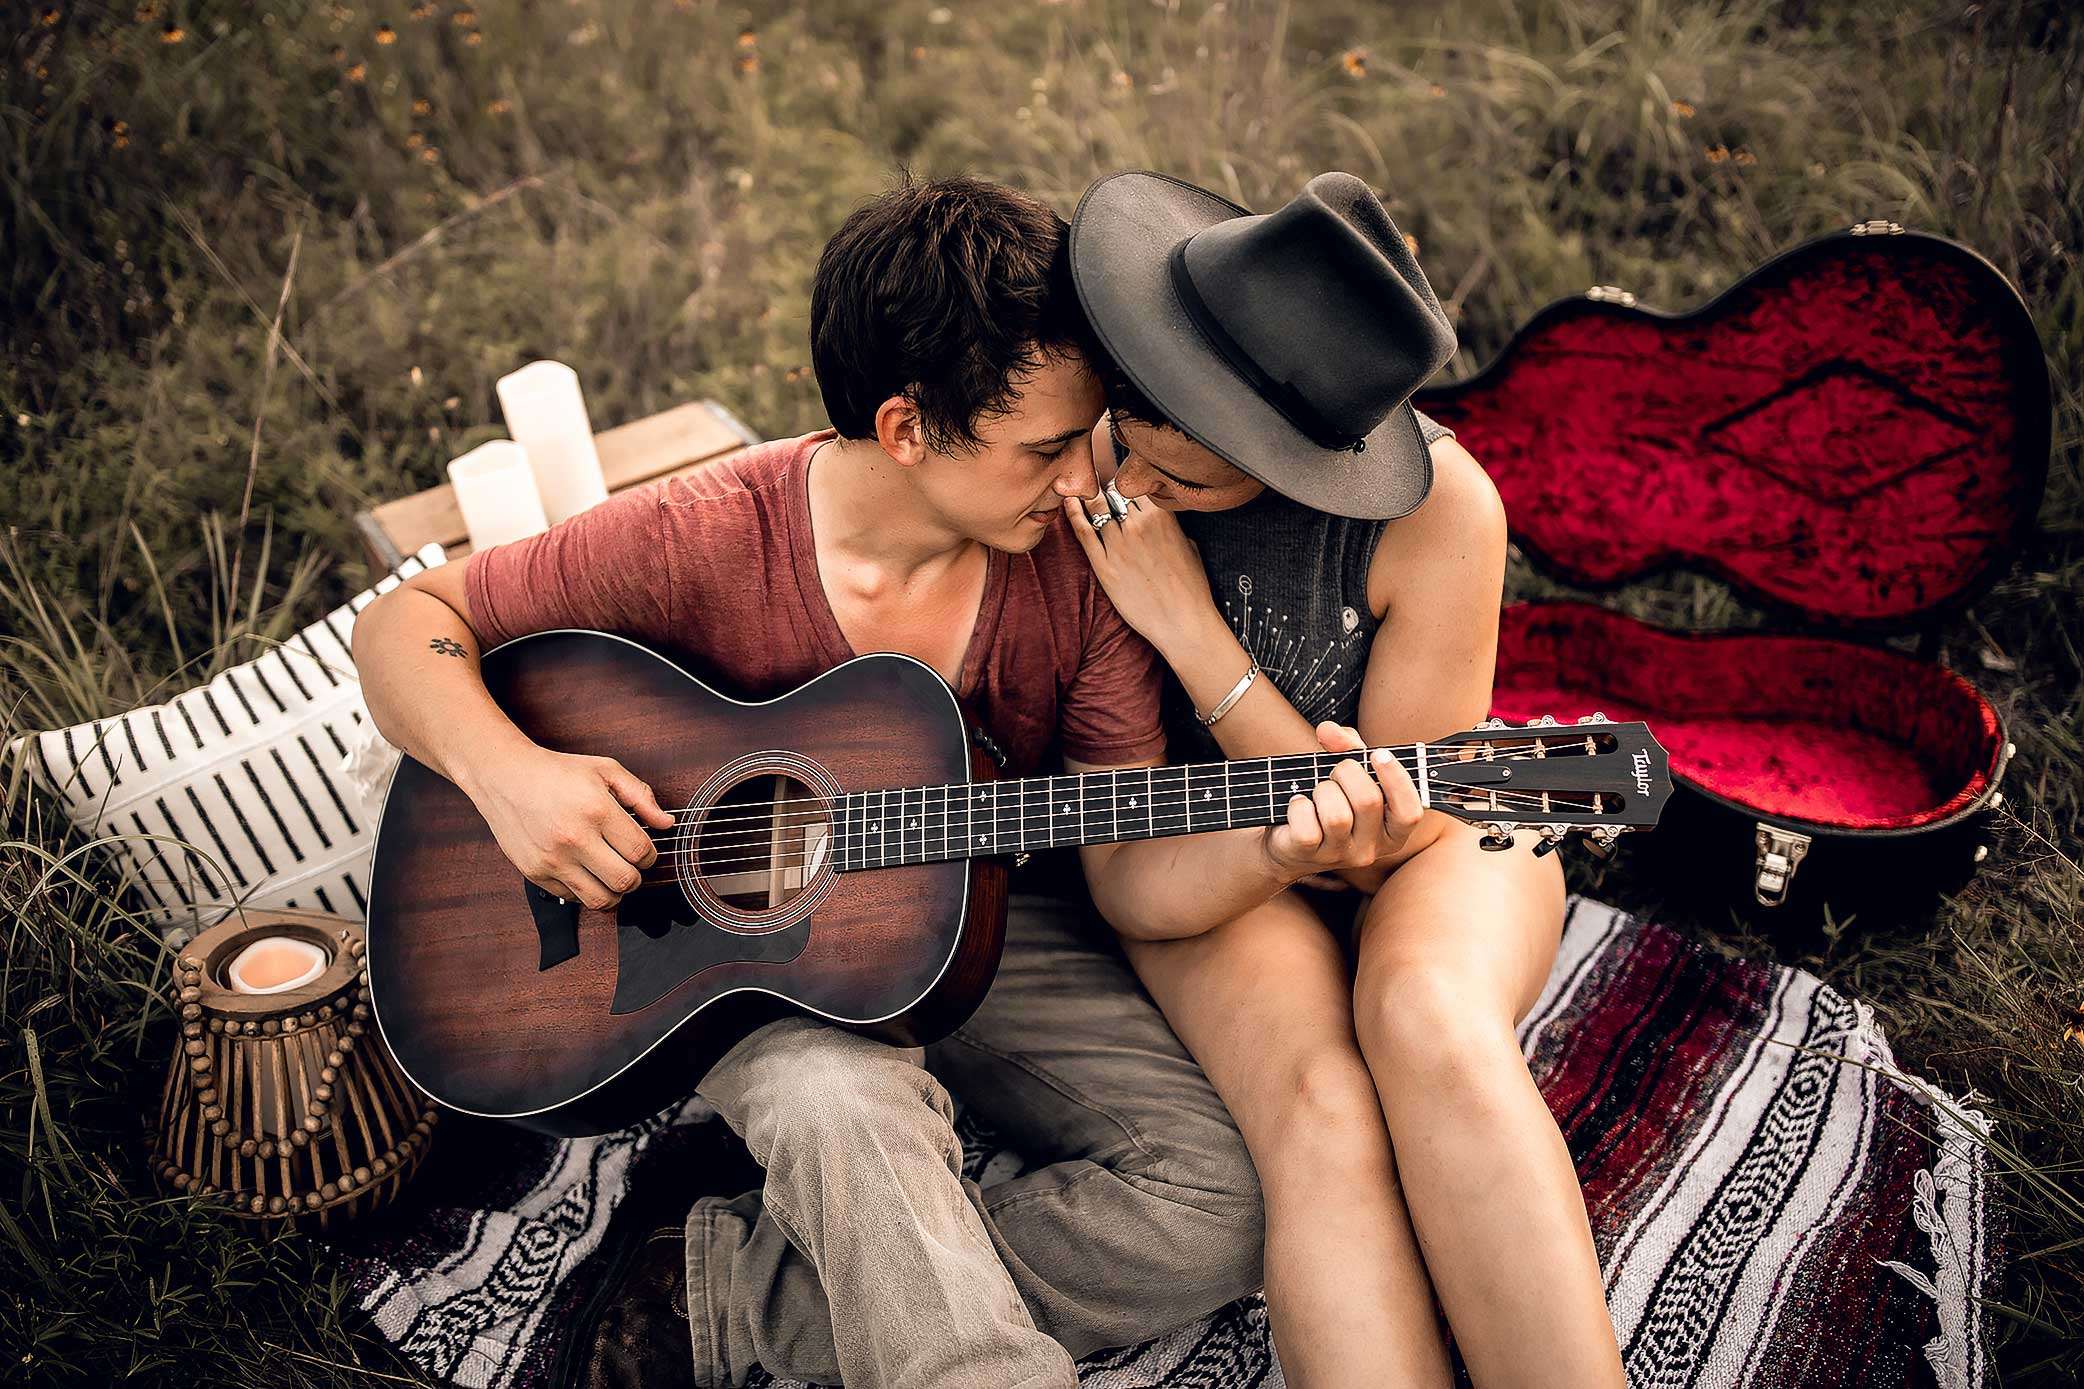 shelby-schiller-photography-couples-boho-guitar-picnic-in-area-with-grass-and-trees.jpg